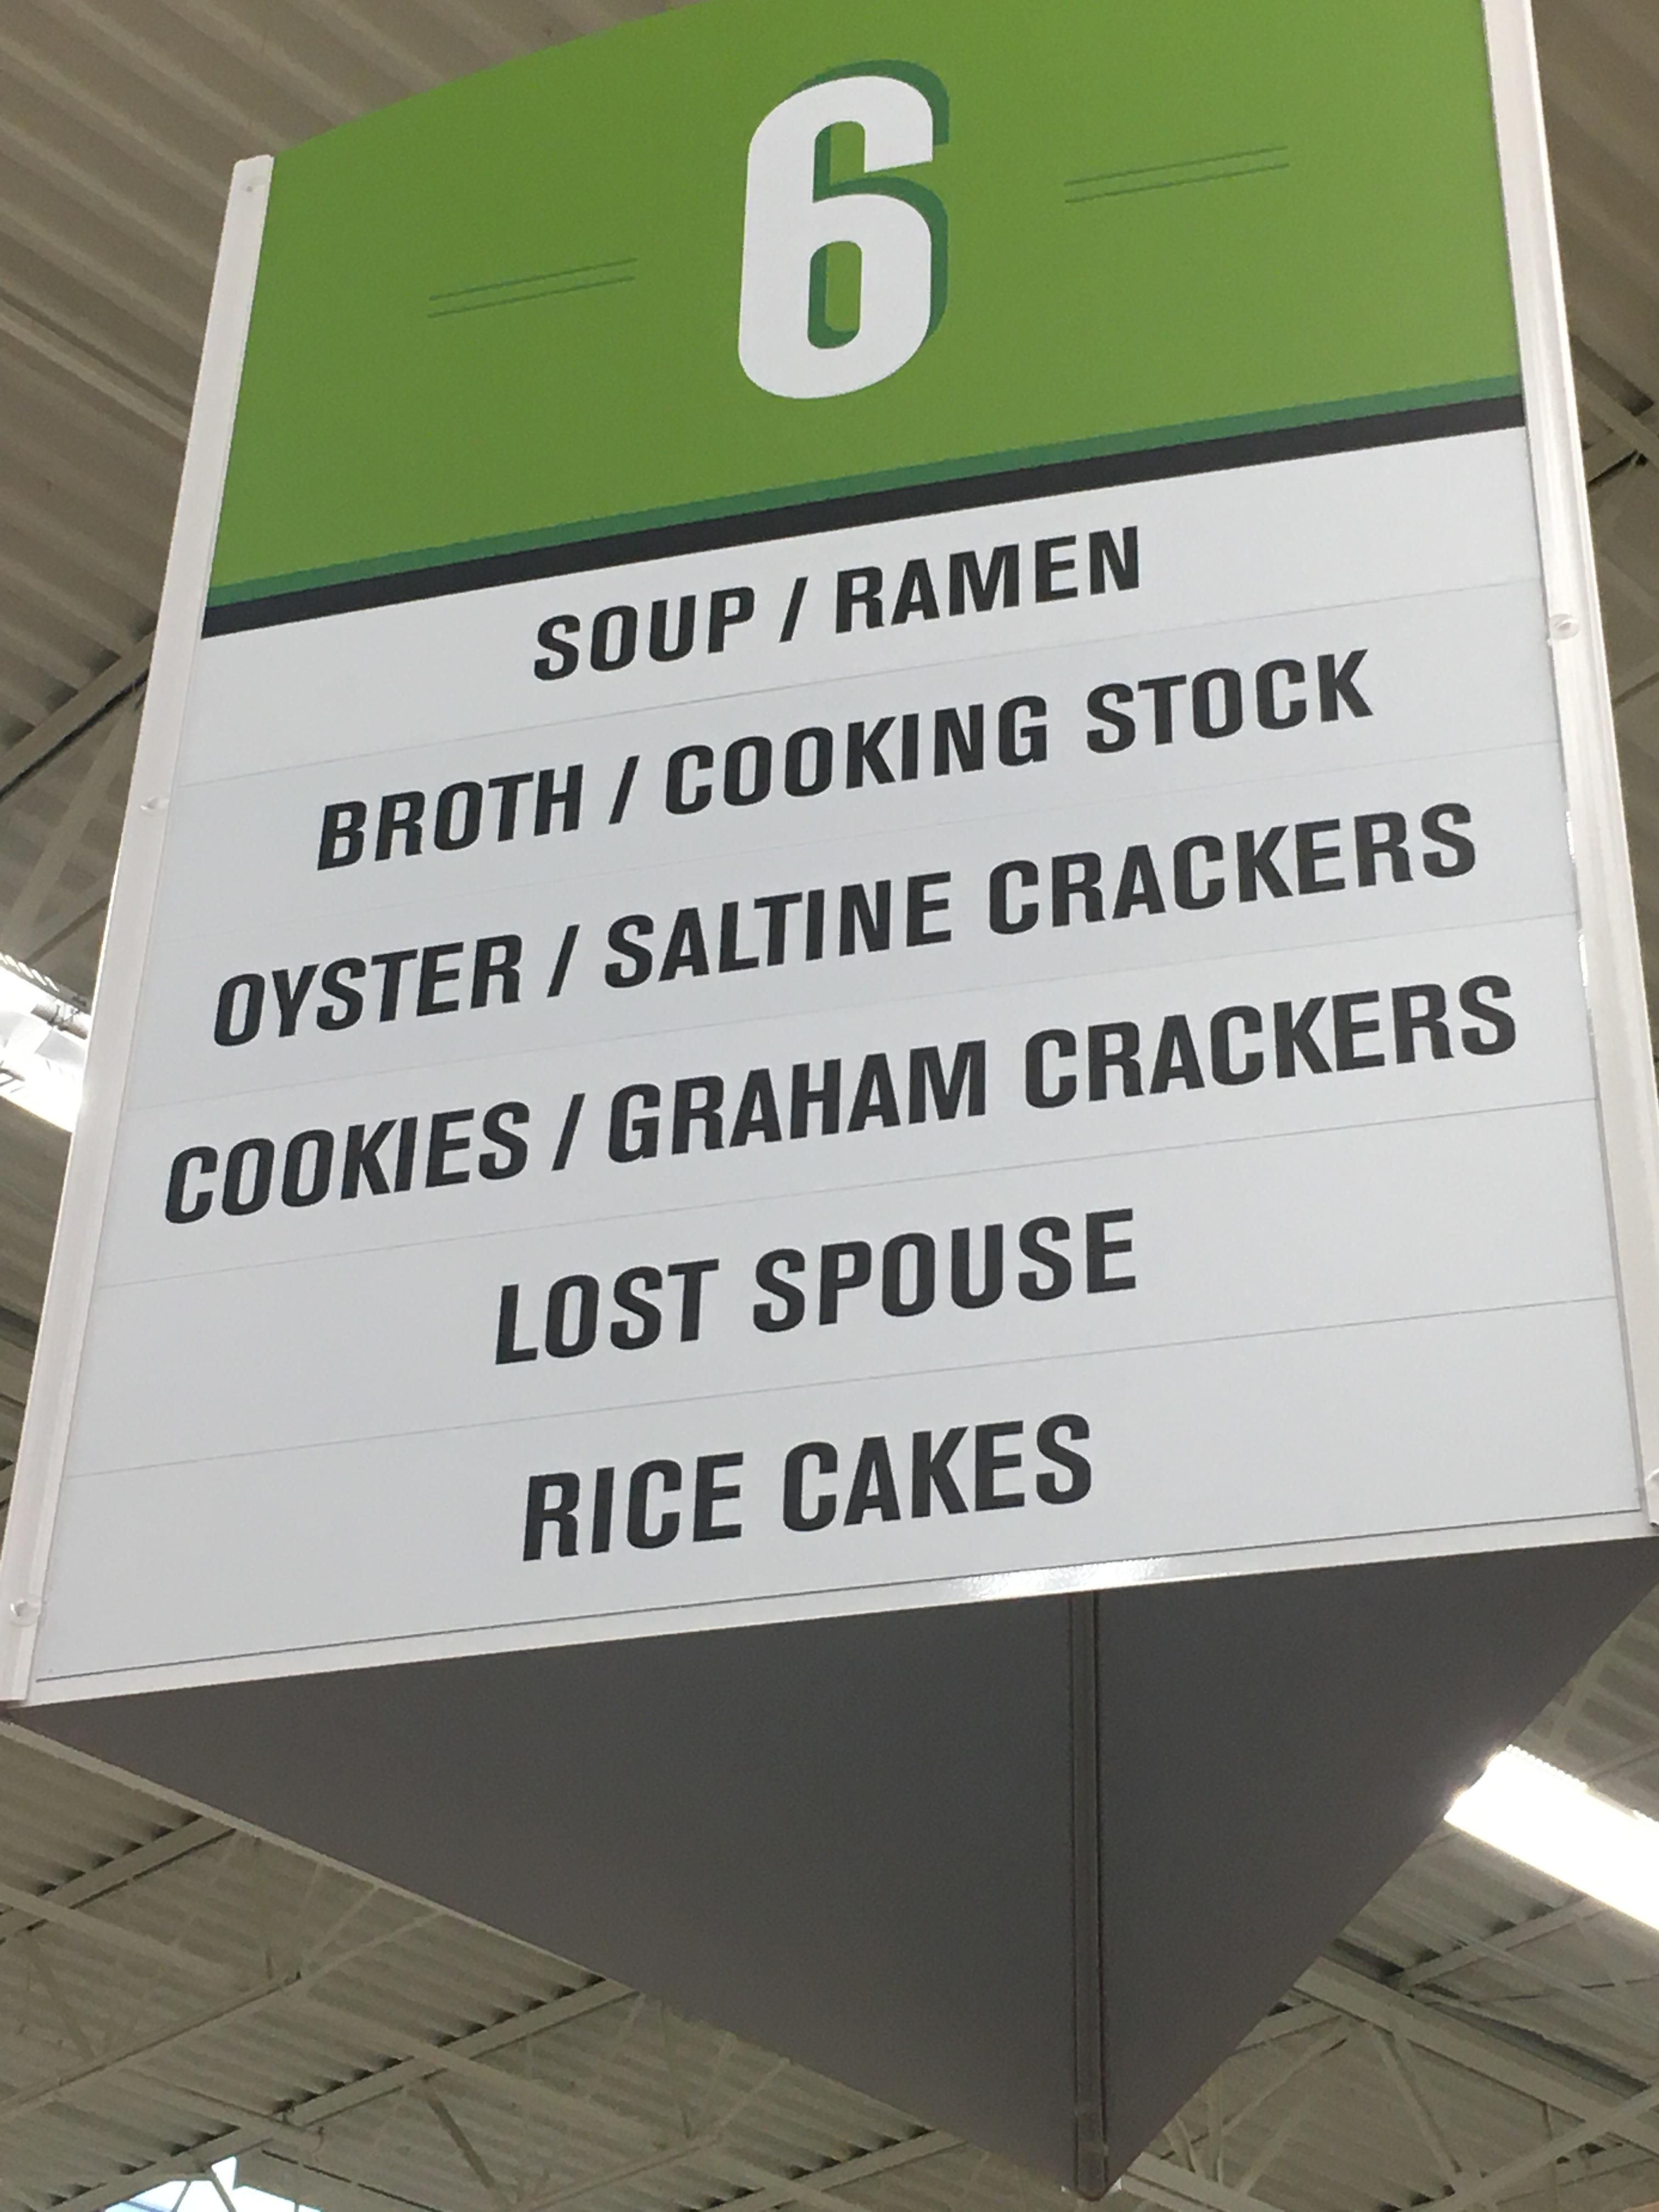 Been in this grocery store several times and just noticed the sign today.